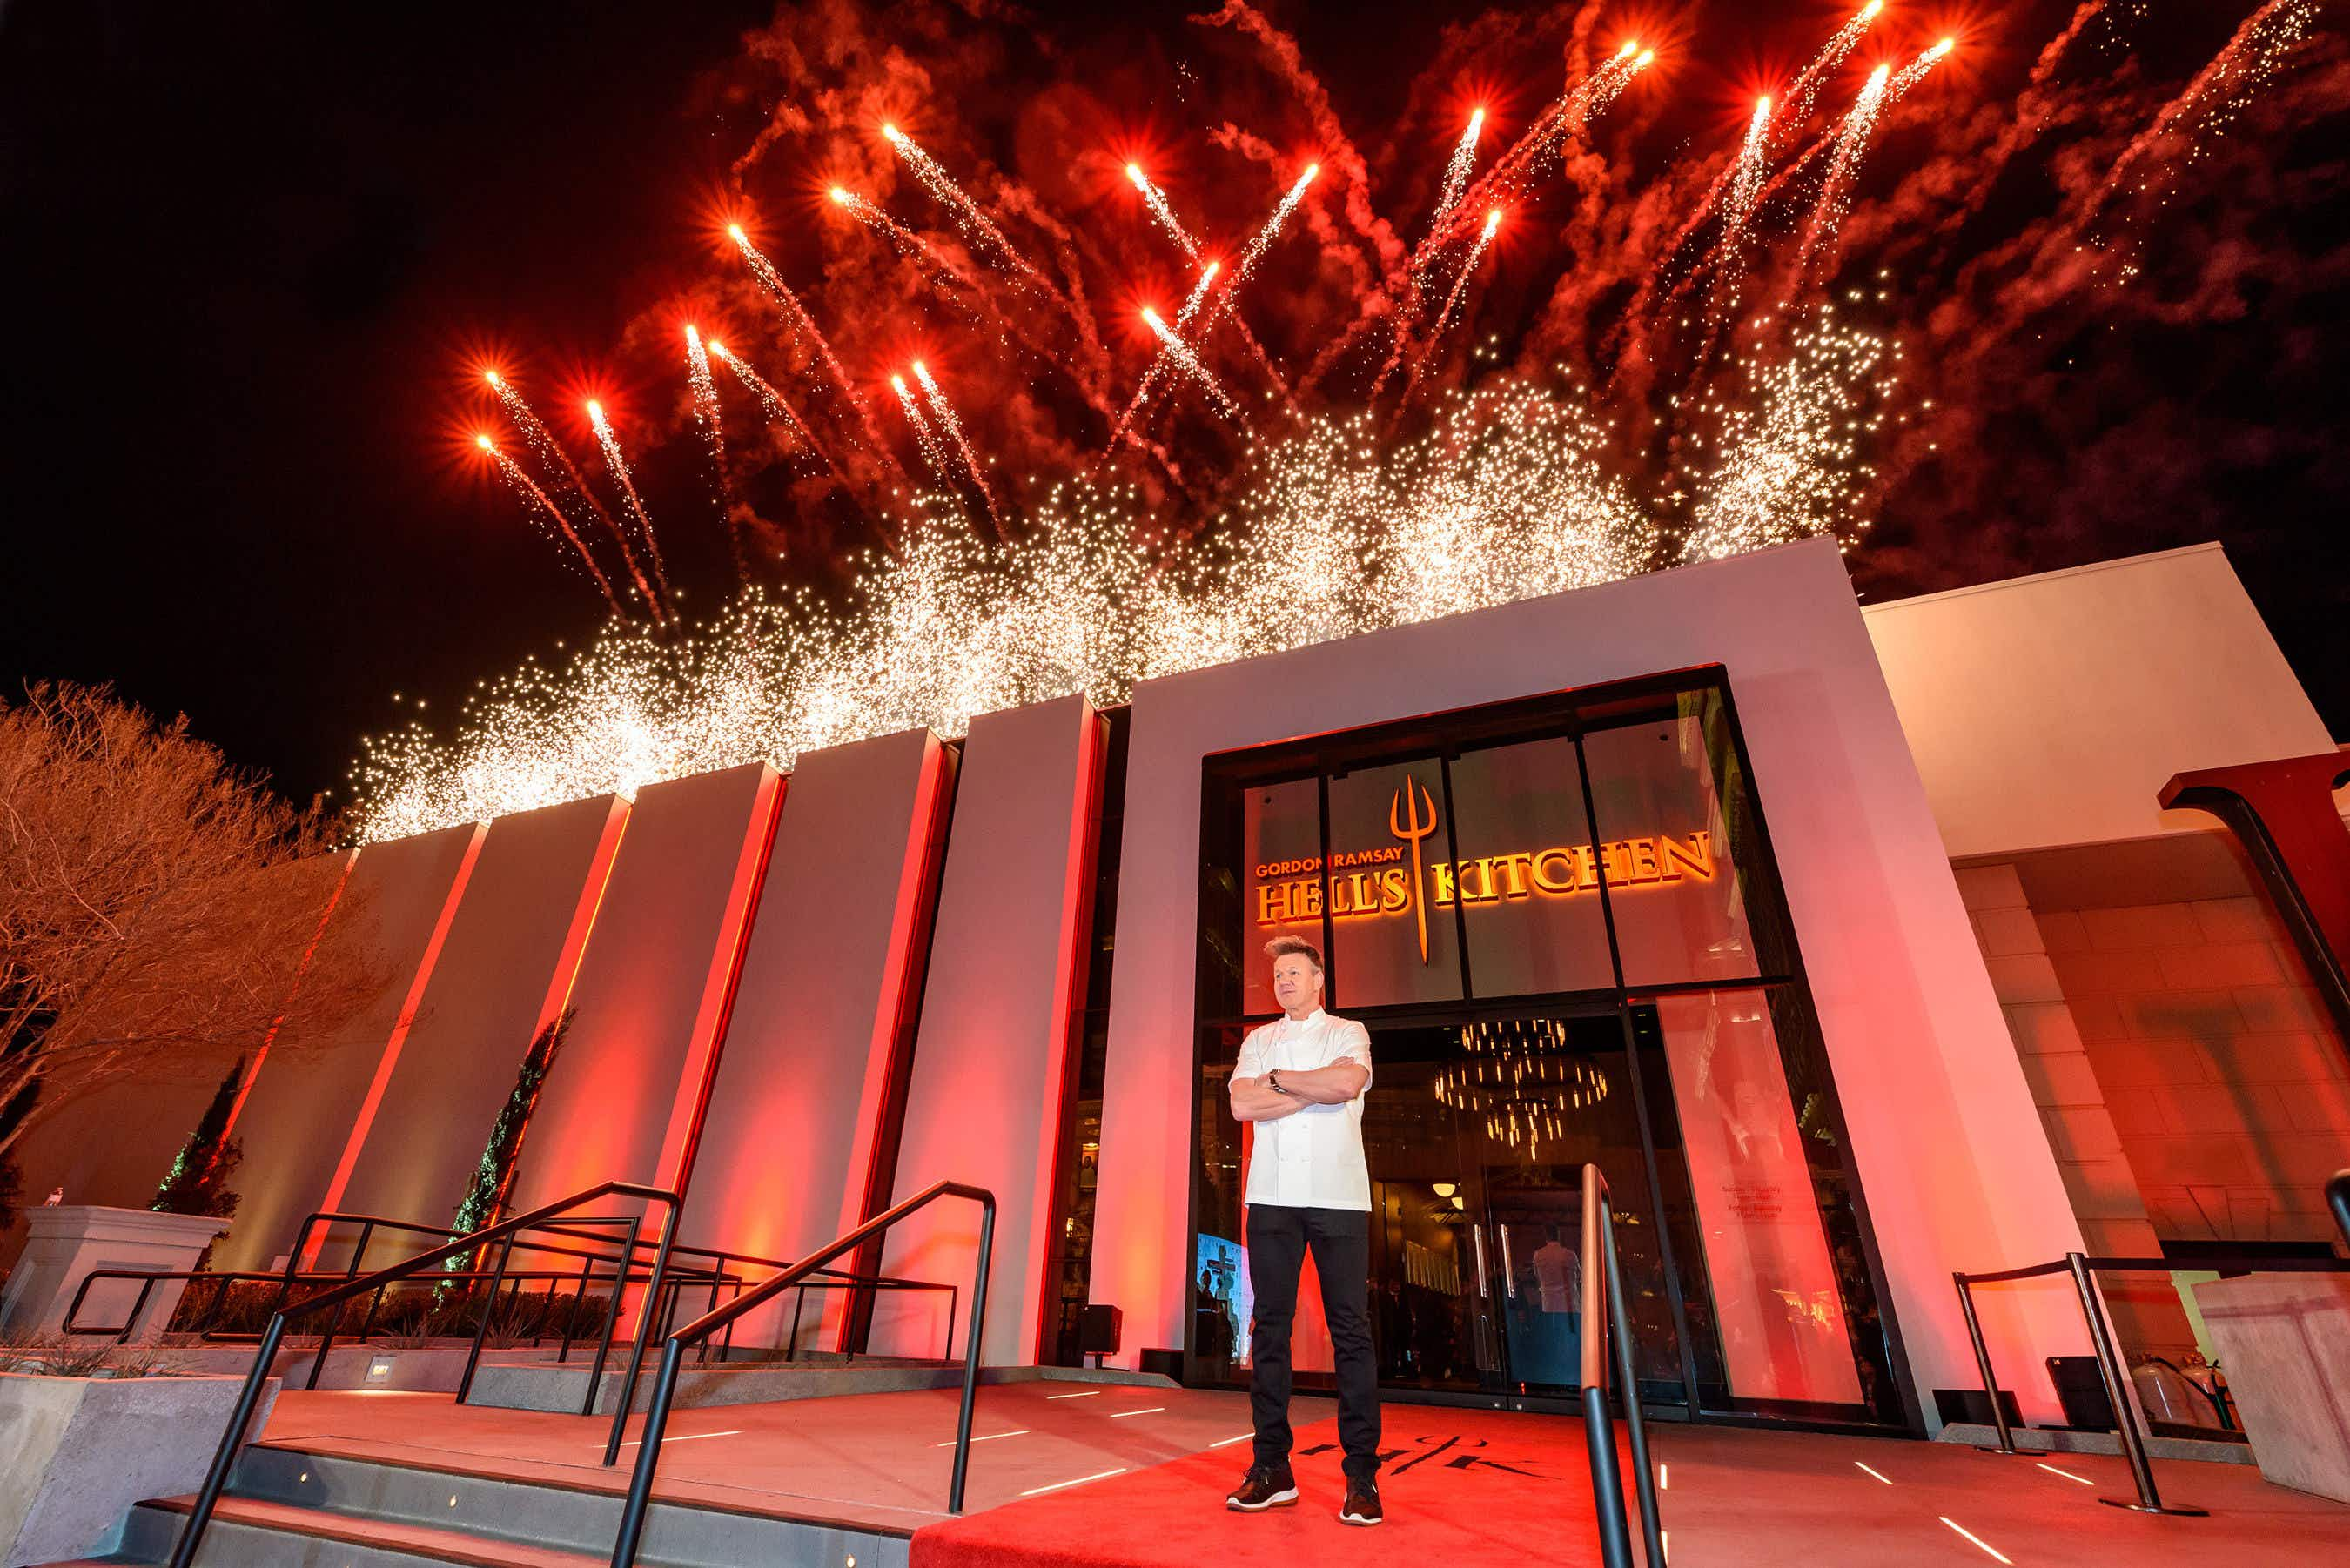 Thousands are waiting to visit Gordon Ramsay's new Hell's Kitchen restaurant in Las Vegas